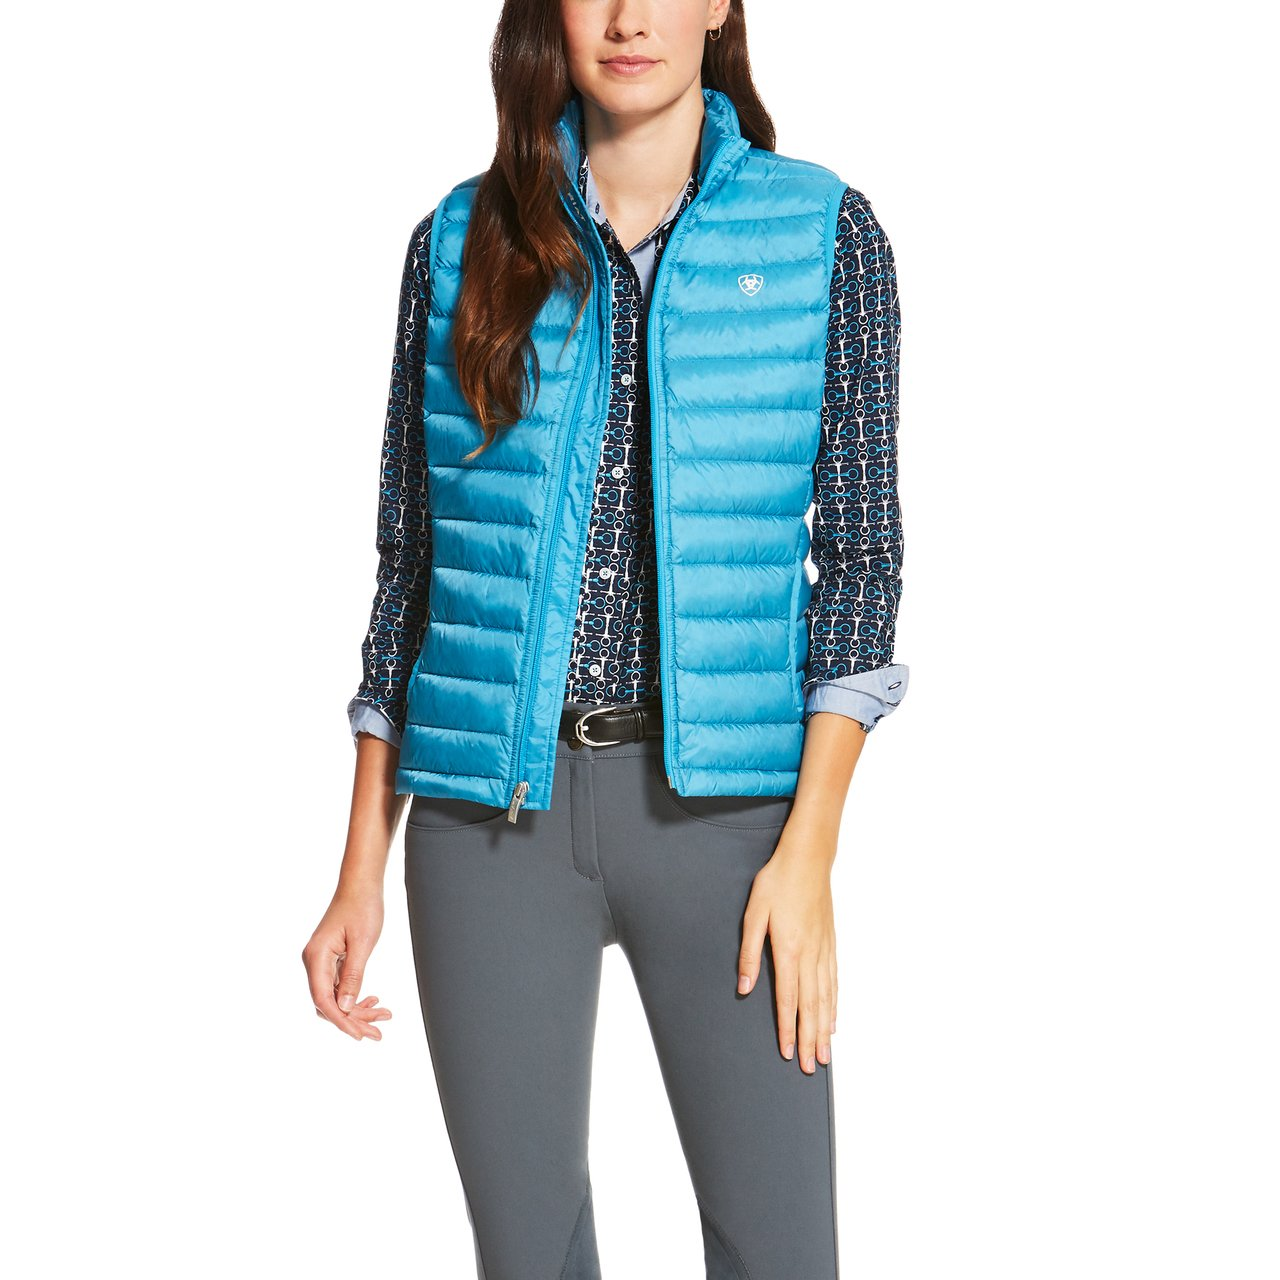 Ariat Women's Down Outerwear Vest Ariat Womens Code IDEAL_DOWN_VEST_W_APP